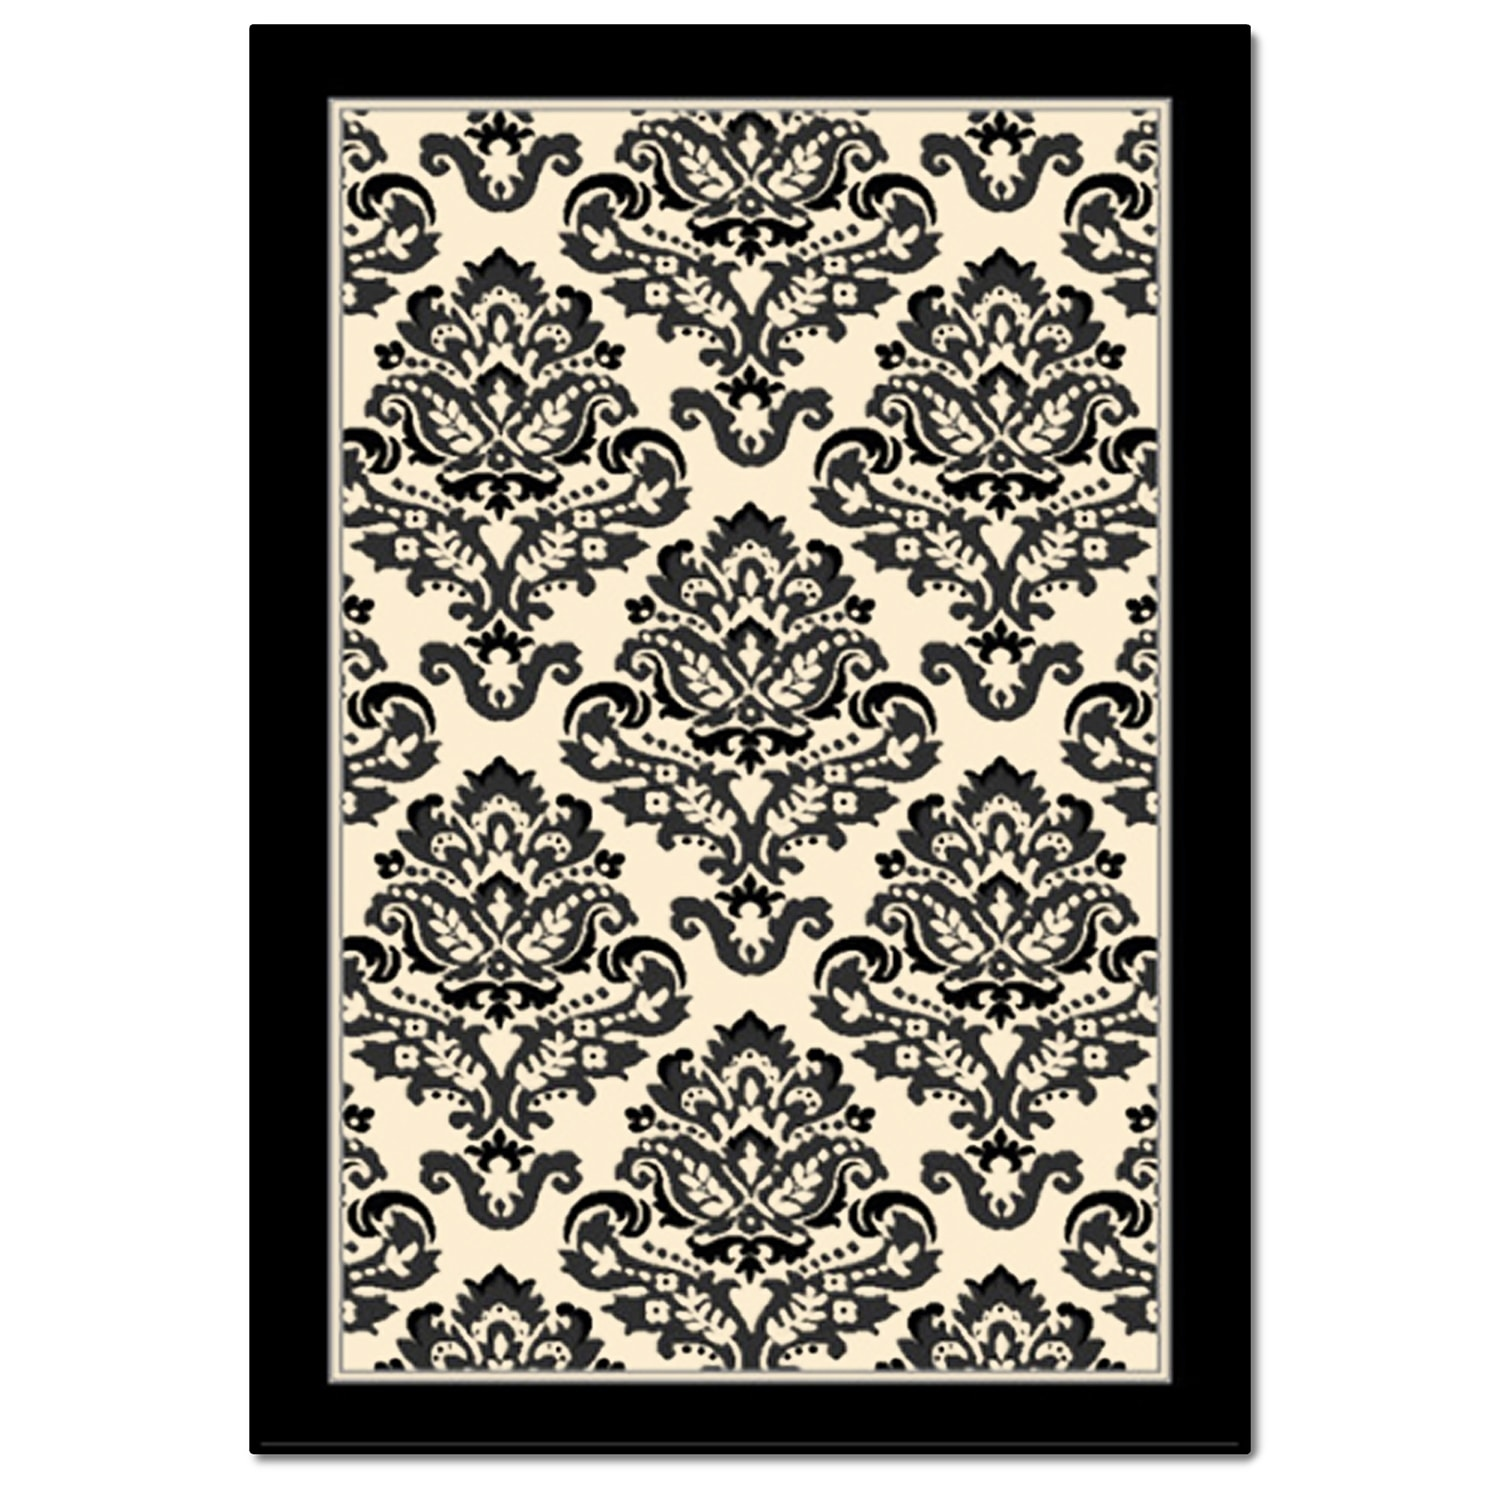 Rugs - Terra Clementine Area Rug - Black and White